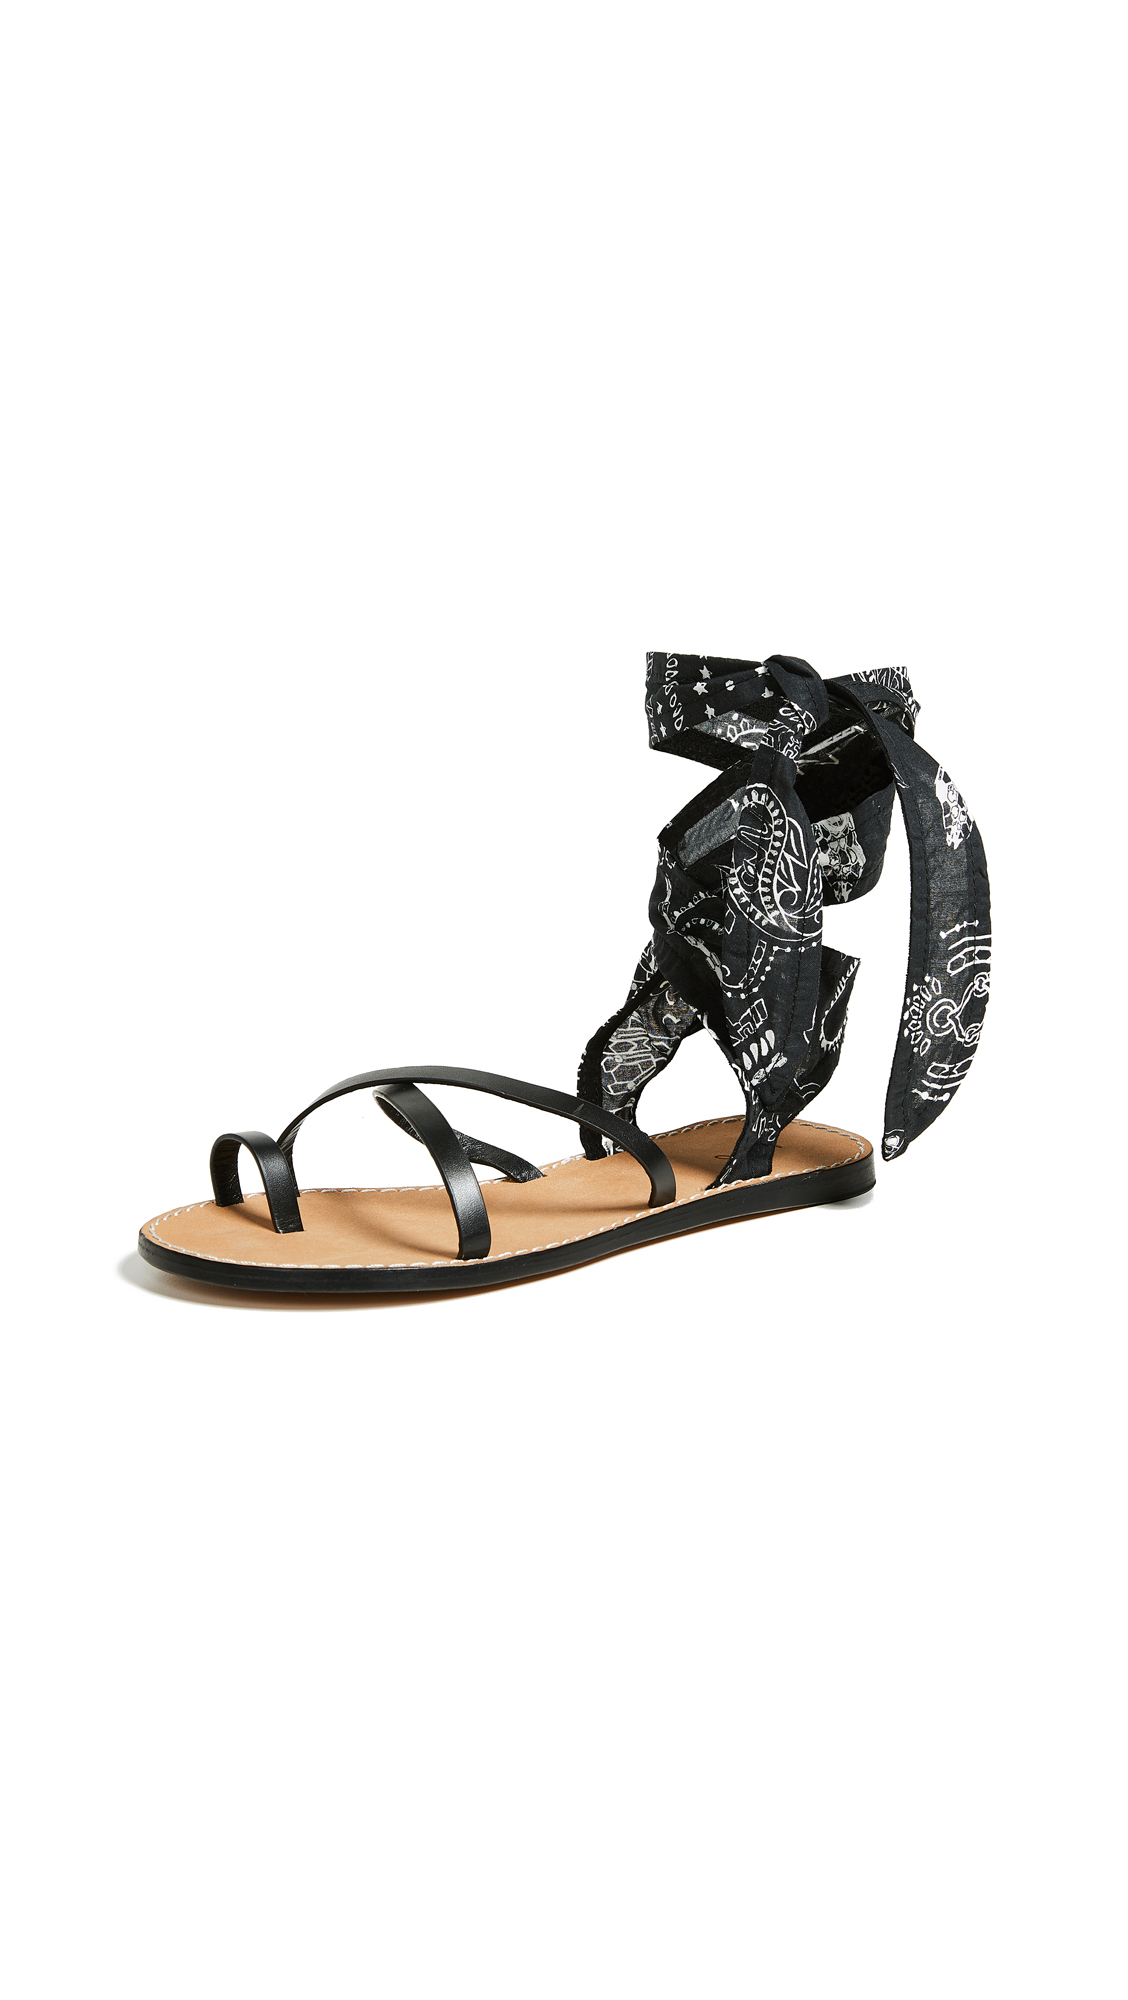 IRO Tais Bandana Wrap Sandals - Black